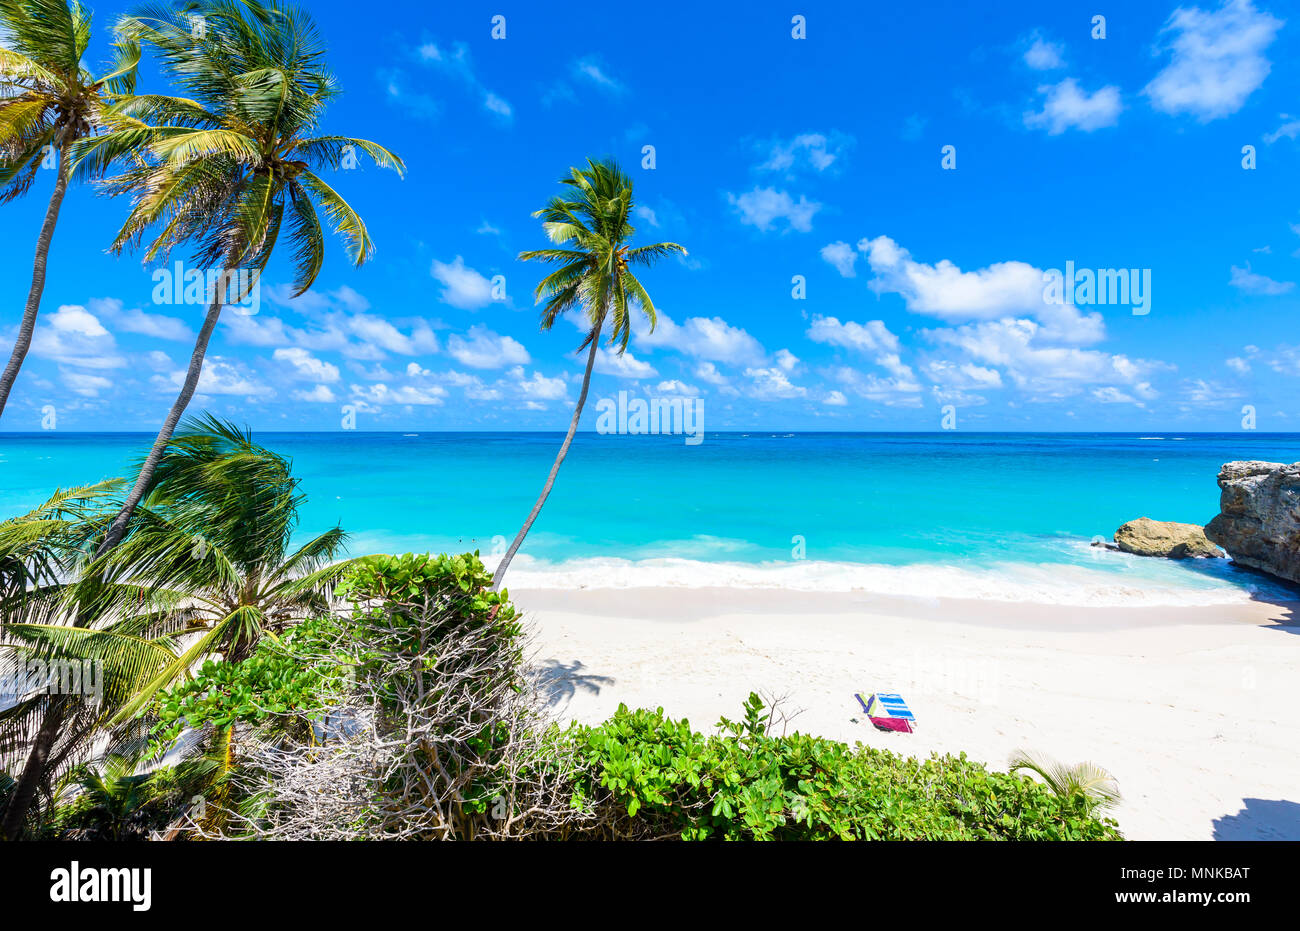 Explore The Beauty Of Caribbean: Barbados Island Stock Photos & Barbados Island Stock